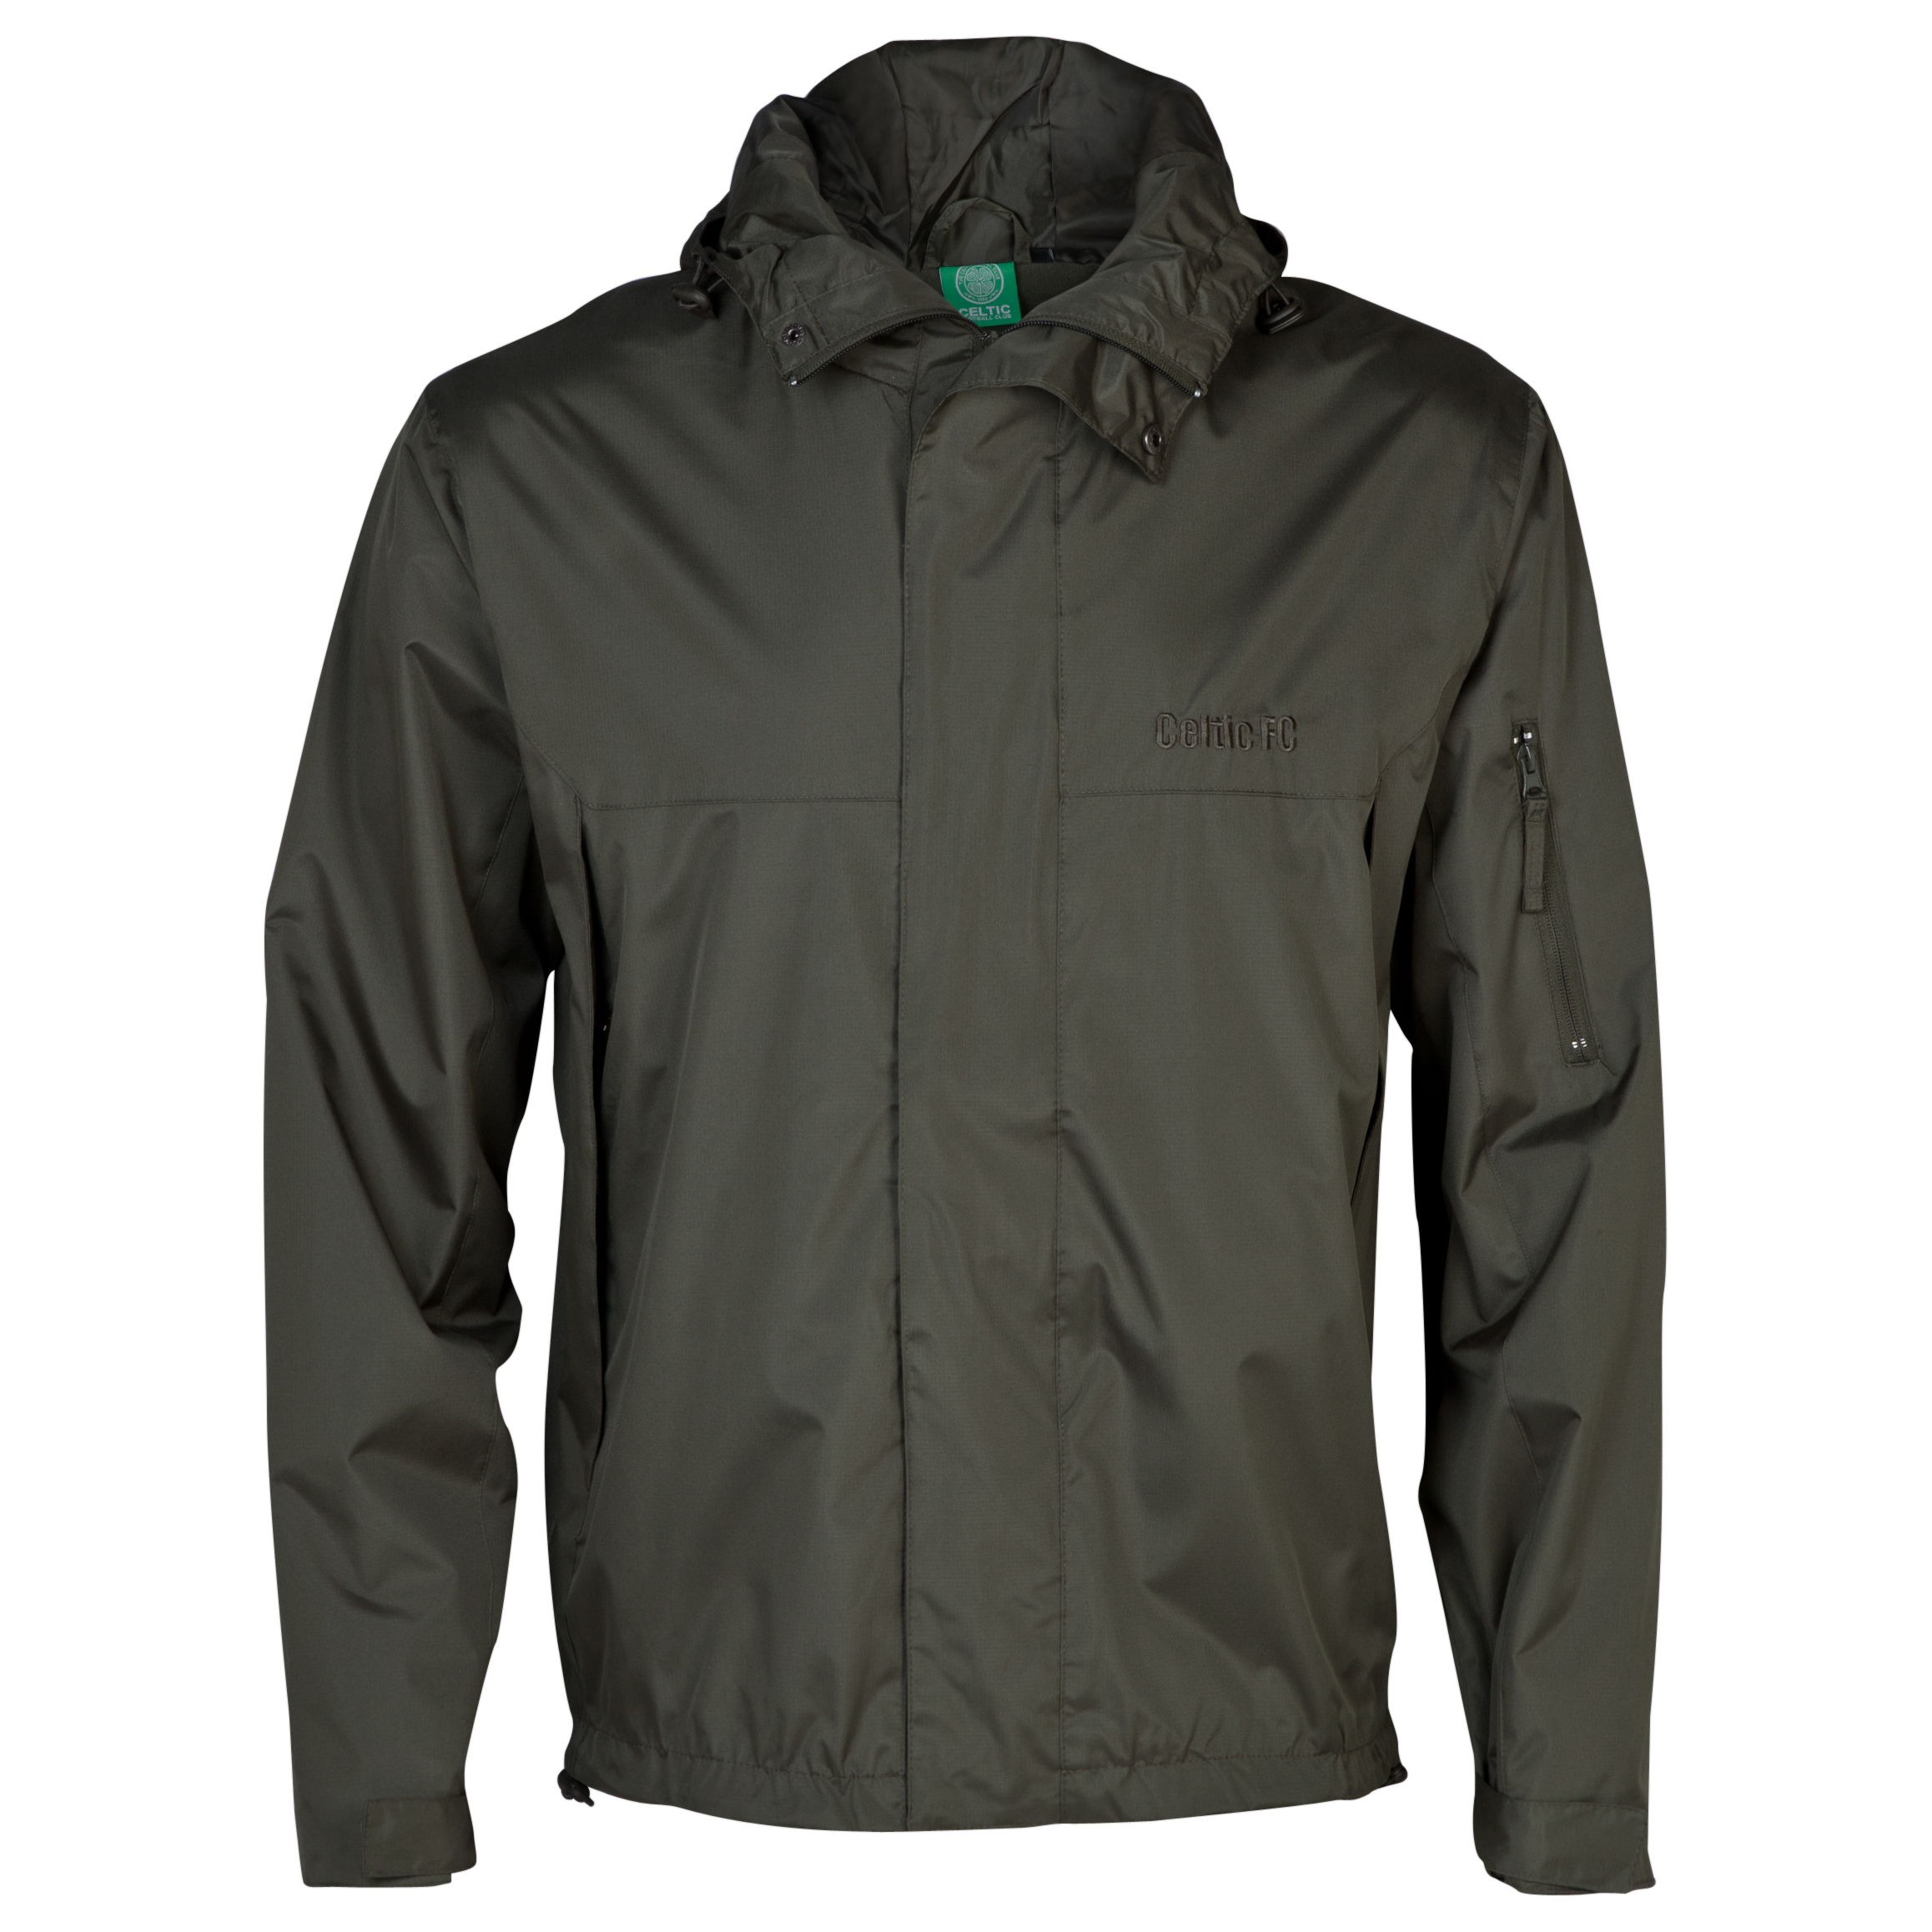 Celtic Essentials Hooded 1/2 Fleece Jacket - Mens Dk Green